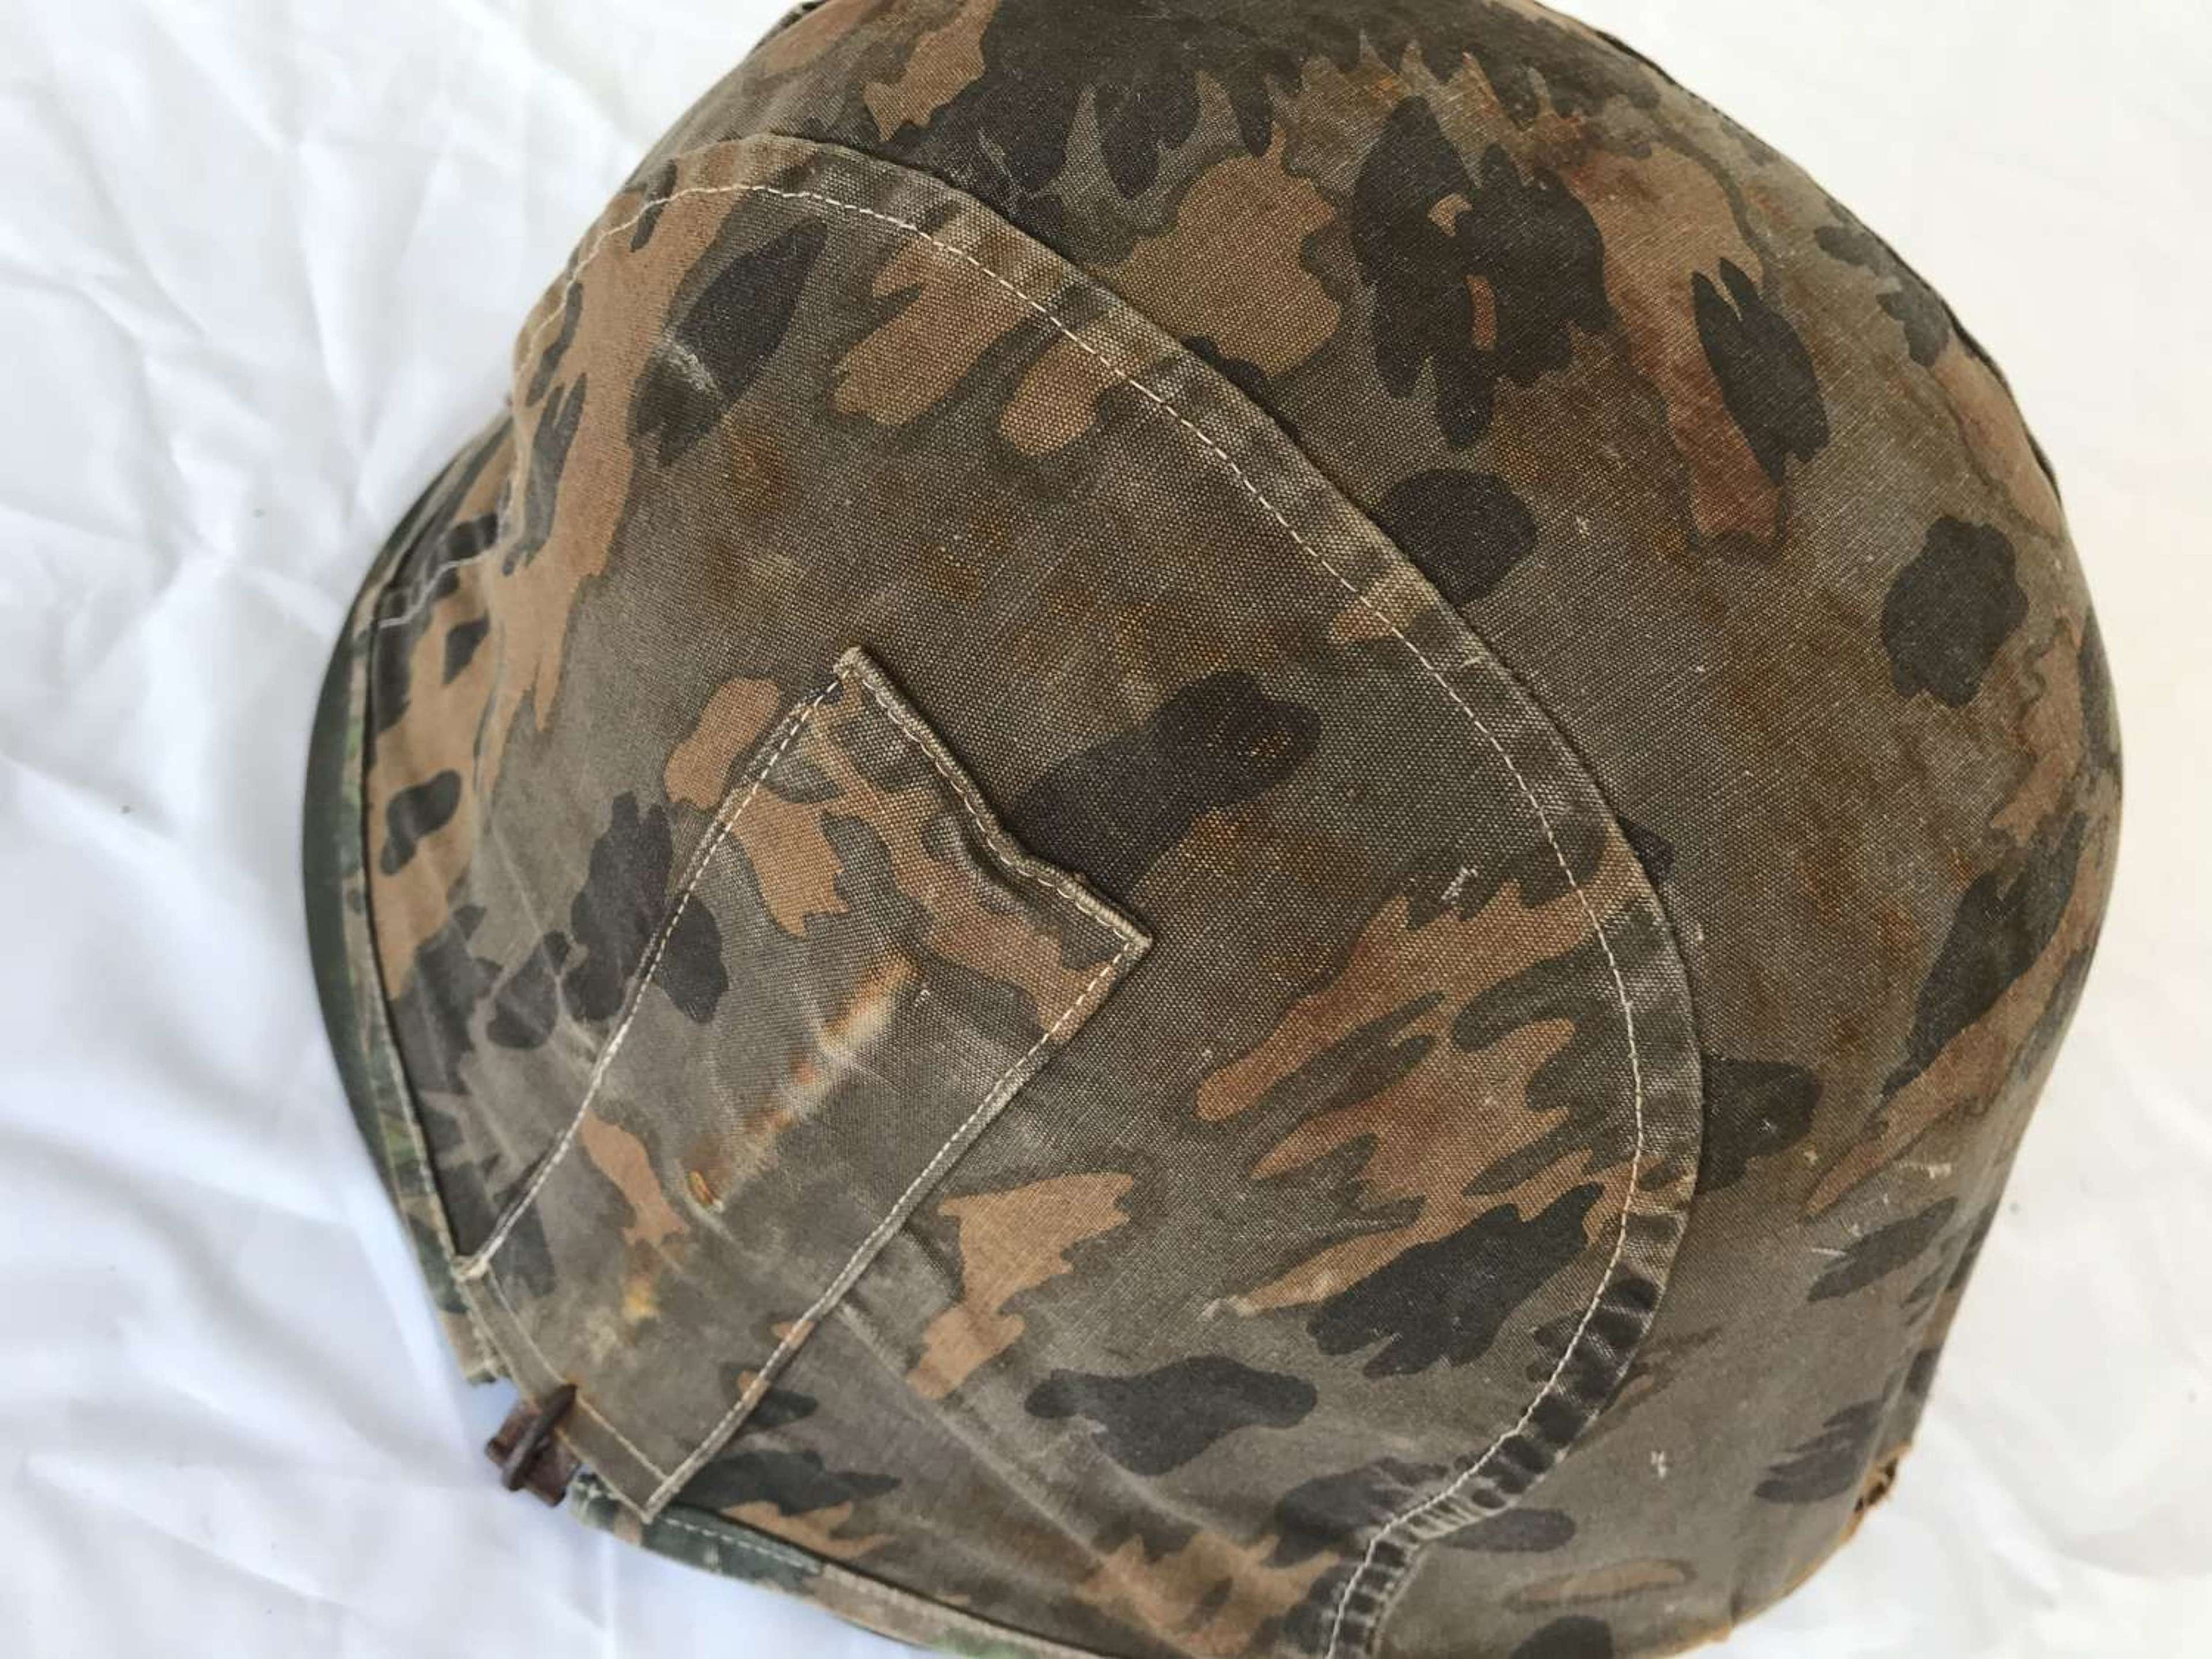 Reproduction Waffen Ss helmet with Camo cover